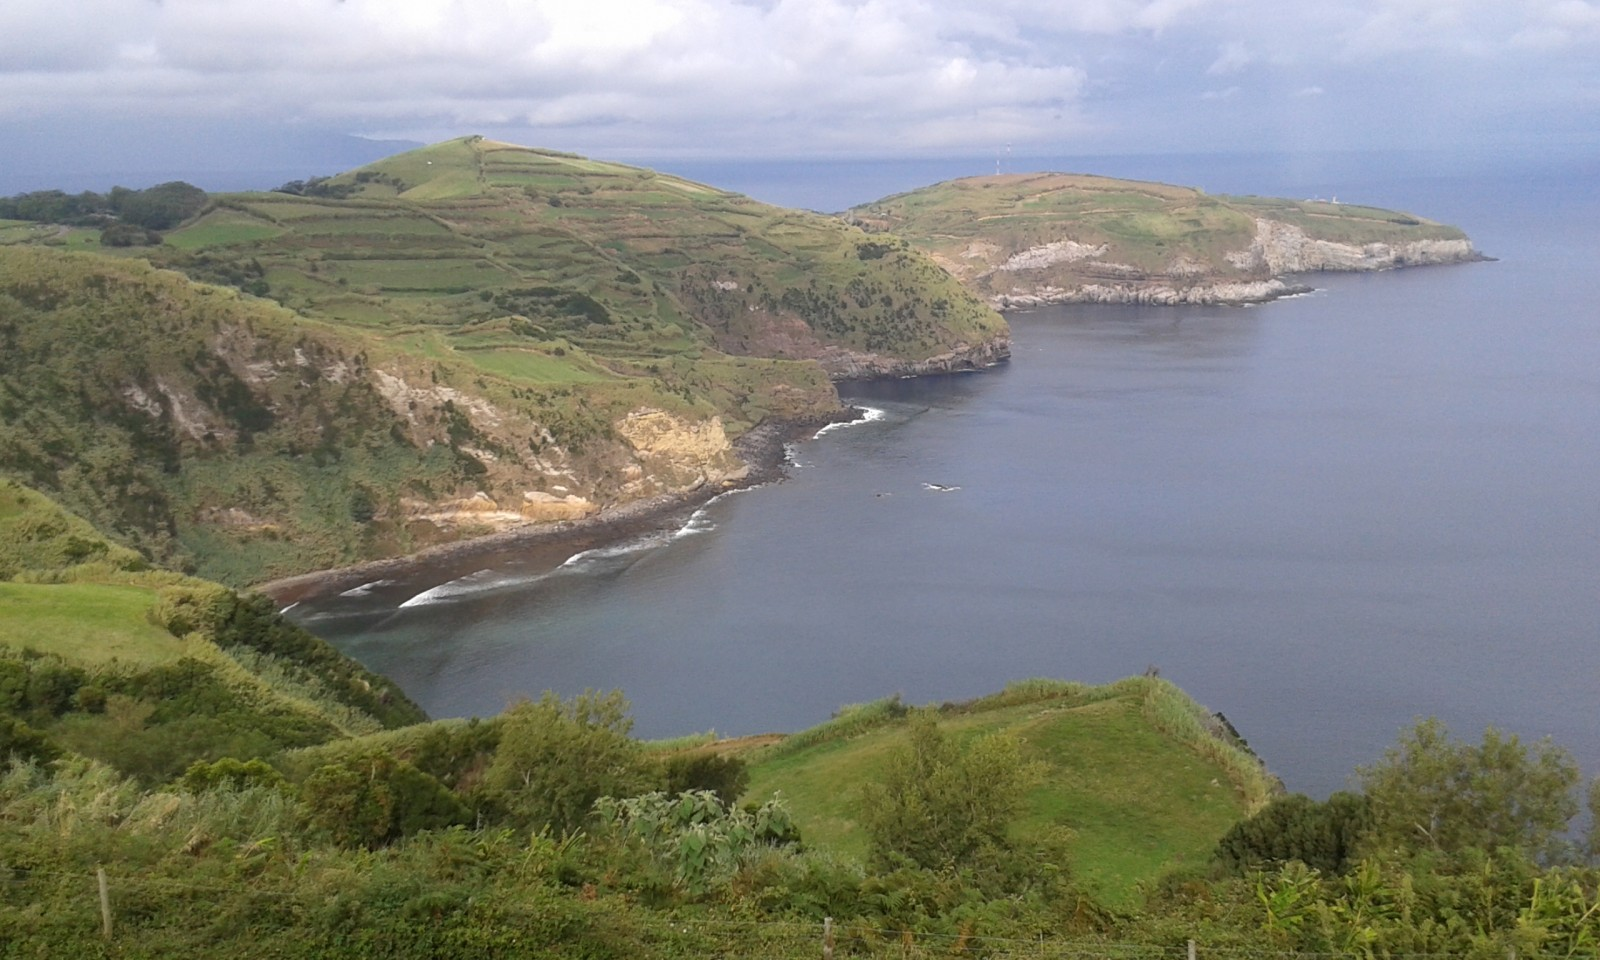 things to do in sao miguel